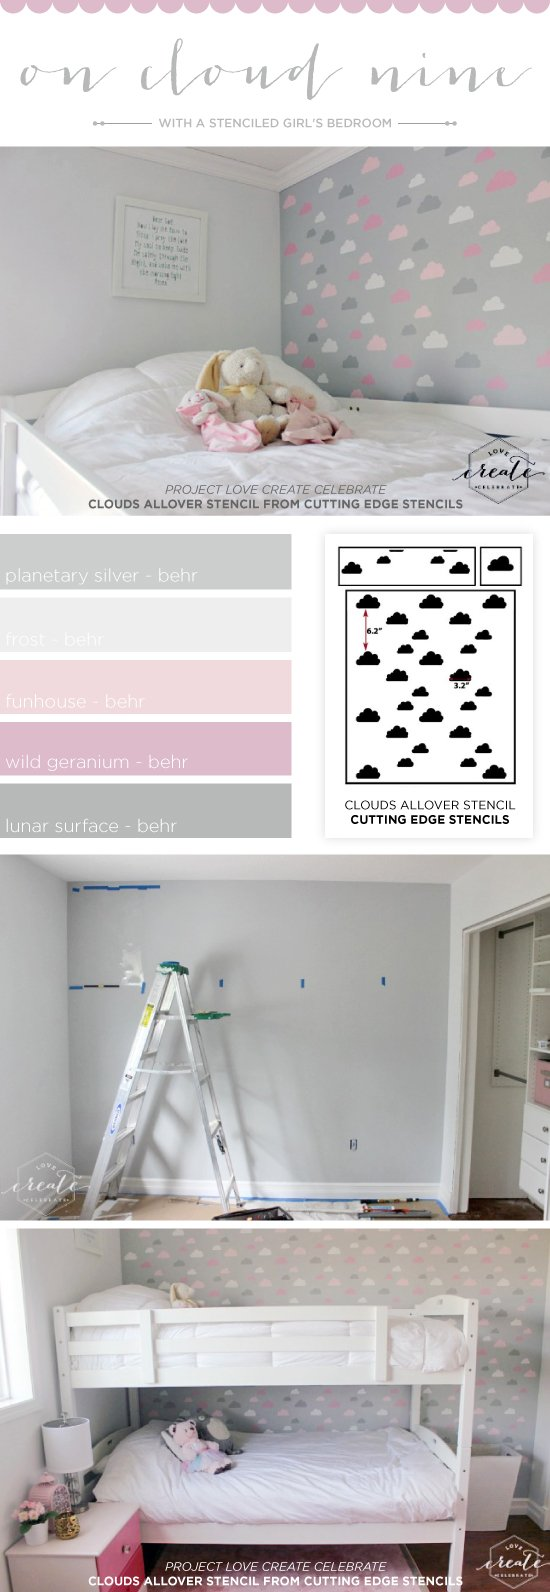 on cloud nine with a stenciled girls bedroom a stencil stori